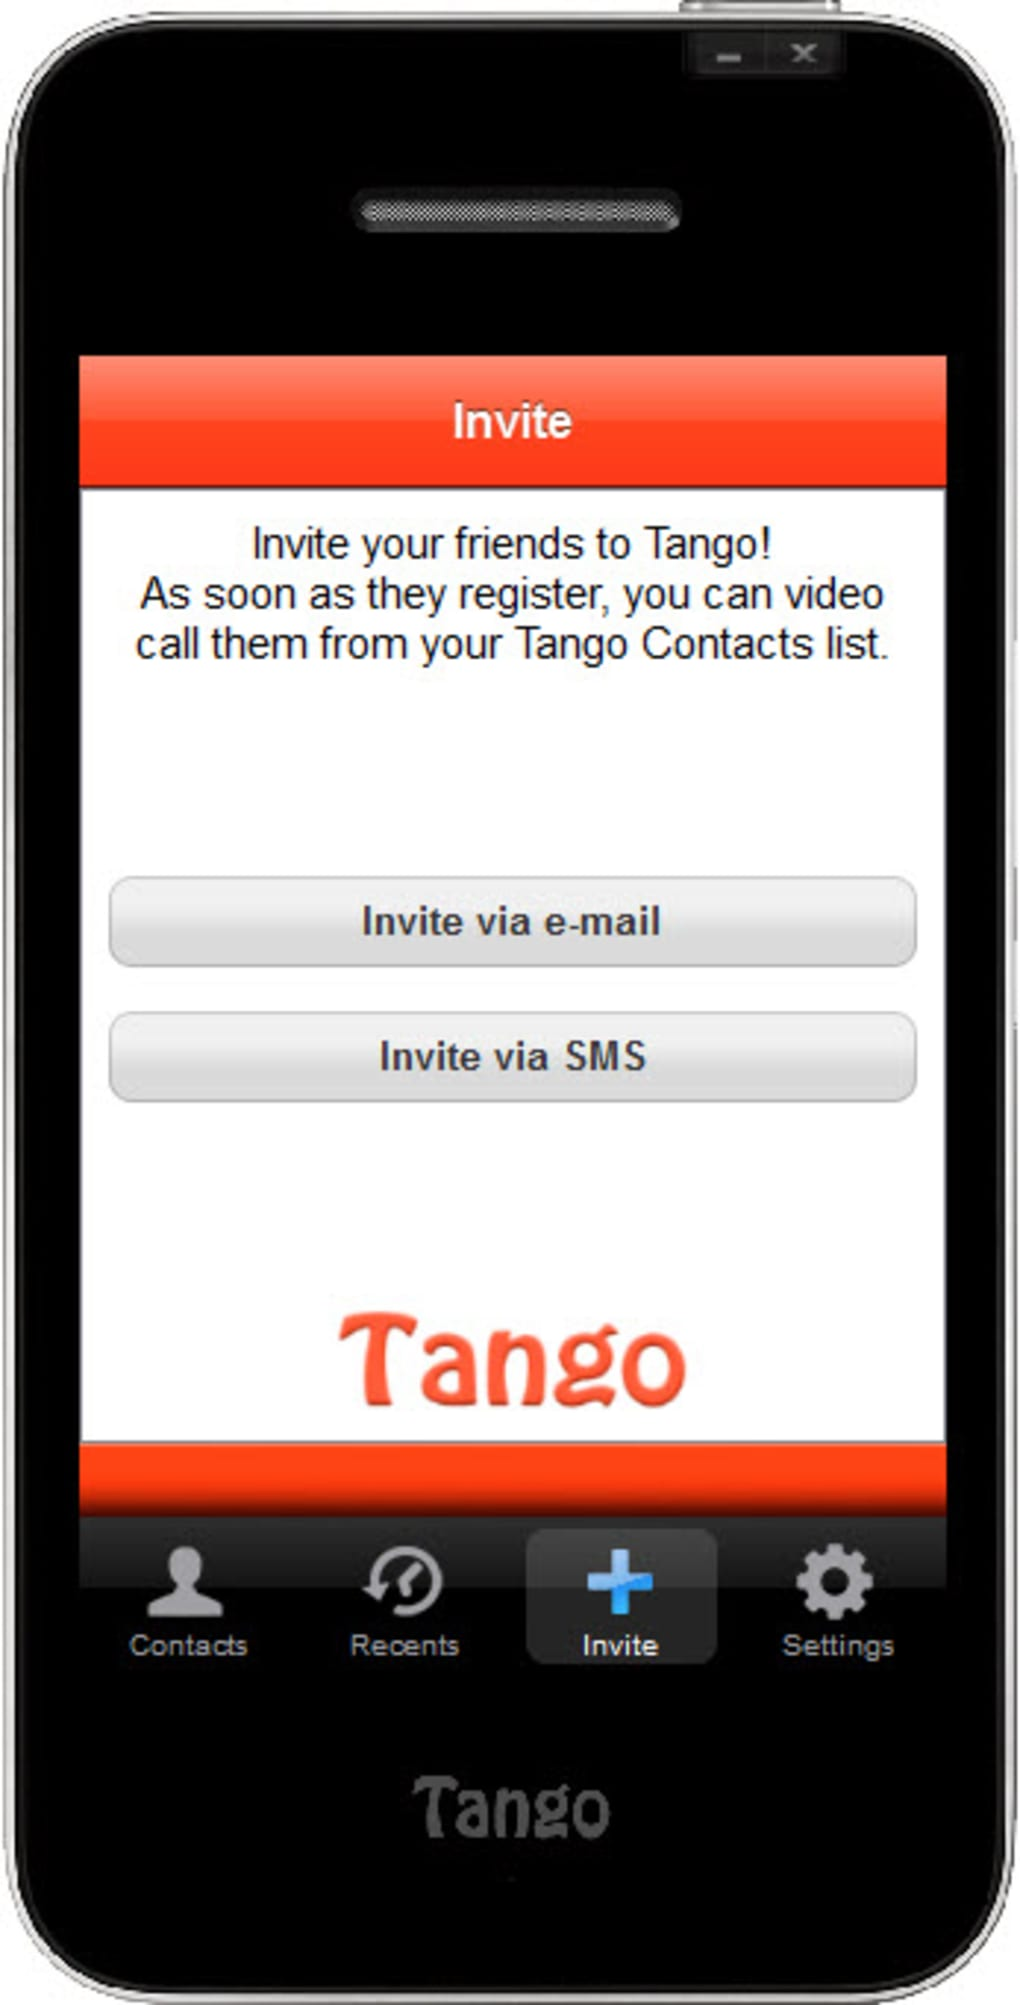 More About Tango